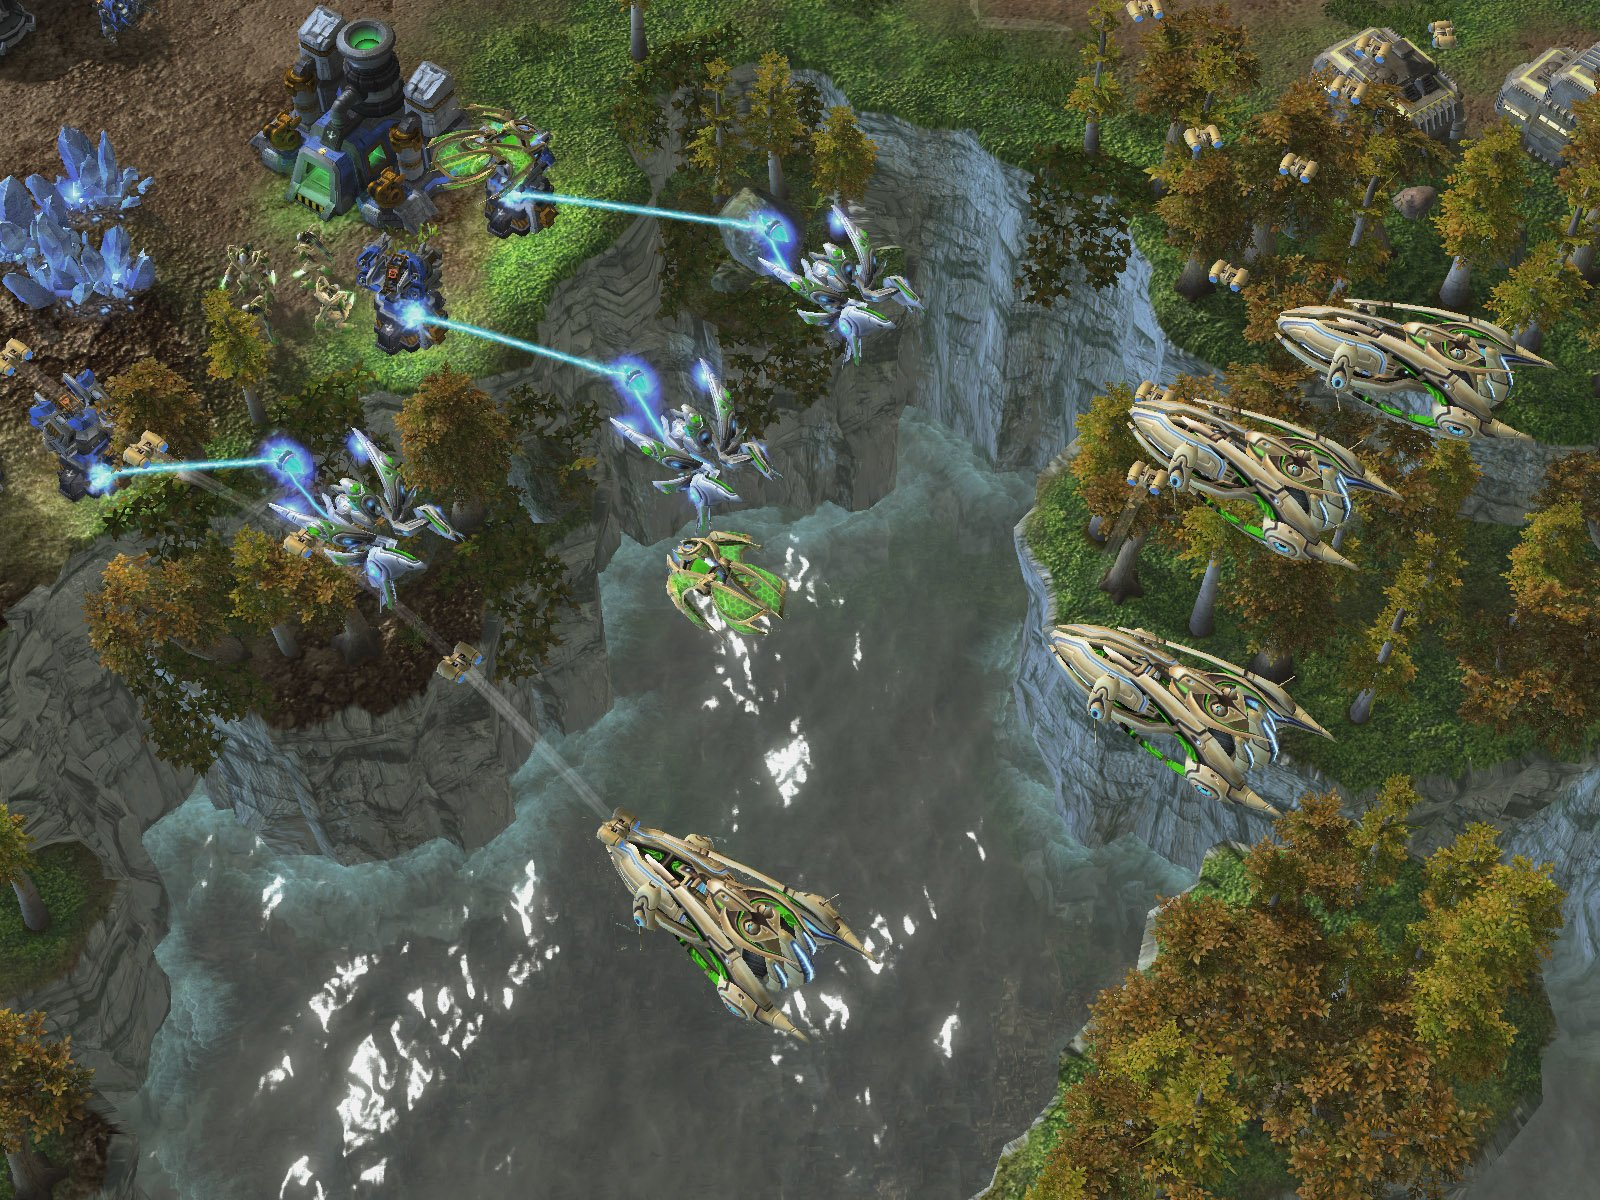 Starcraft II: Wings of Liberty Collector's Edition - PC by Blizzard Entertainment (Image #7)